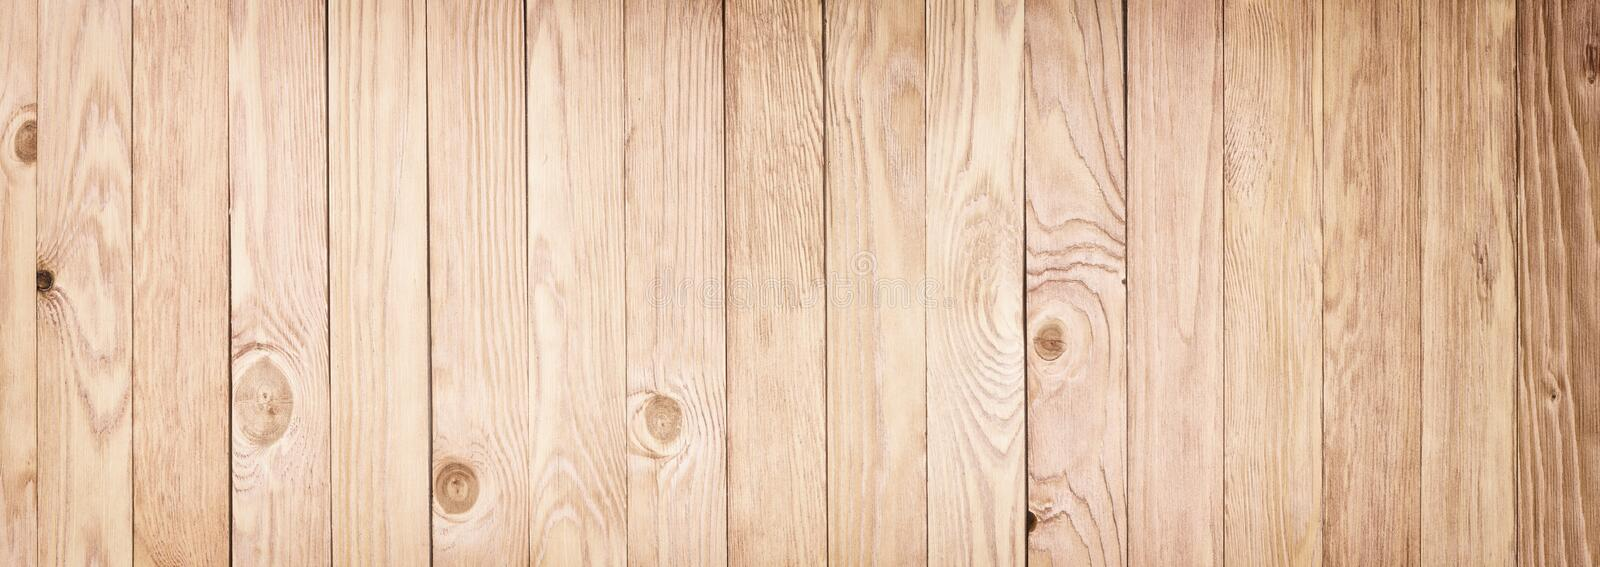 Download Panorama Of Light Wooden Texture Desktop Background Stock Image